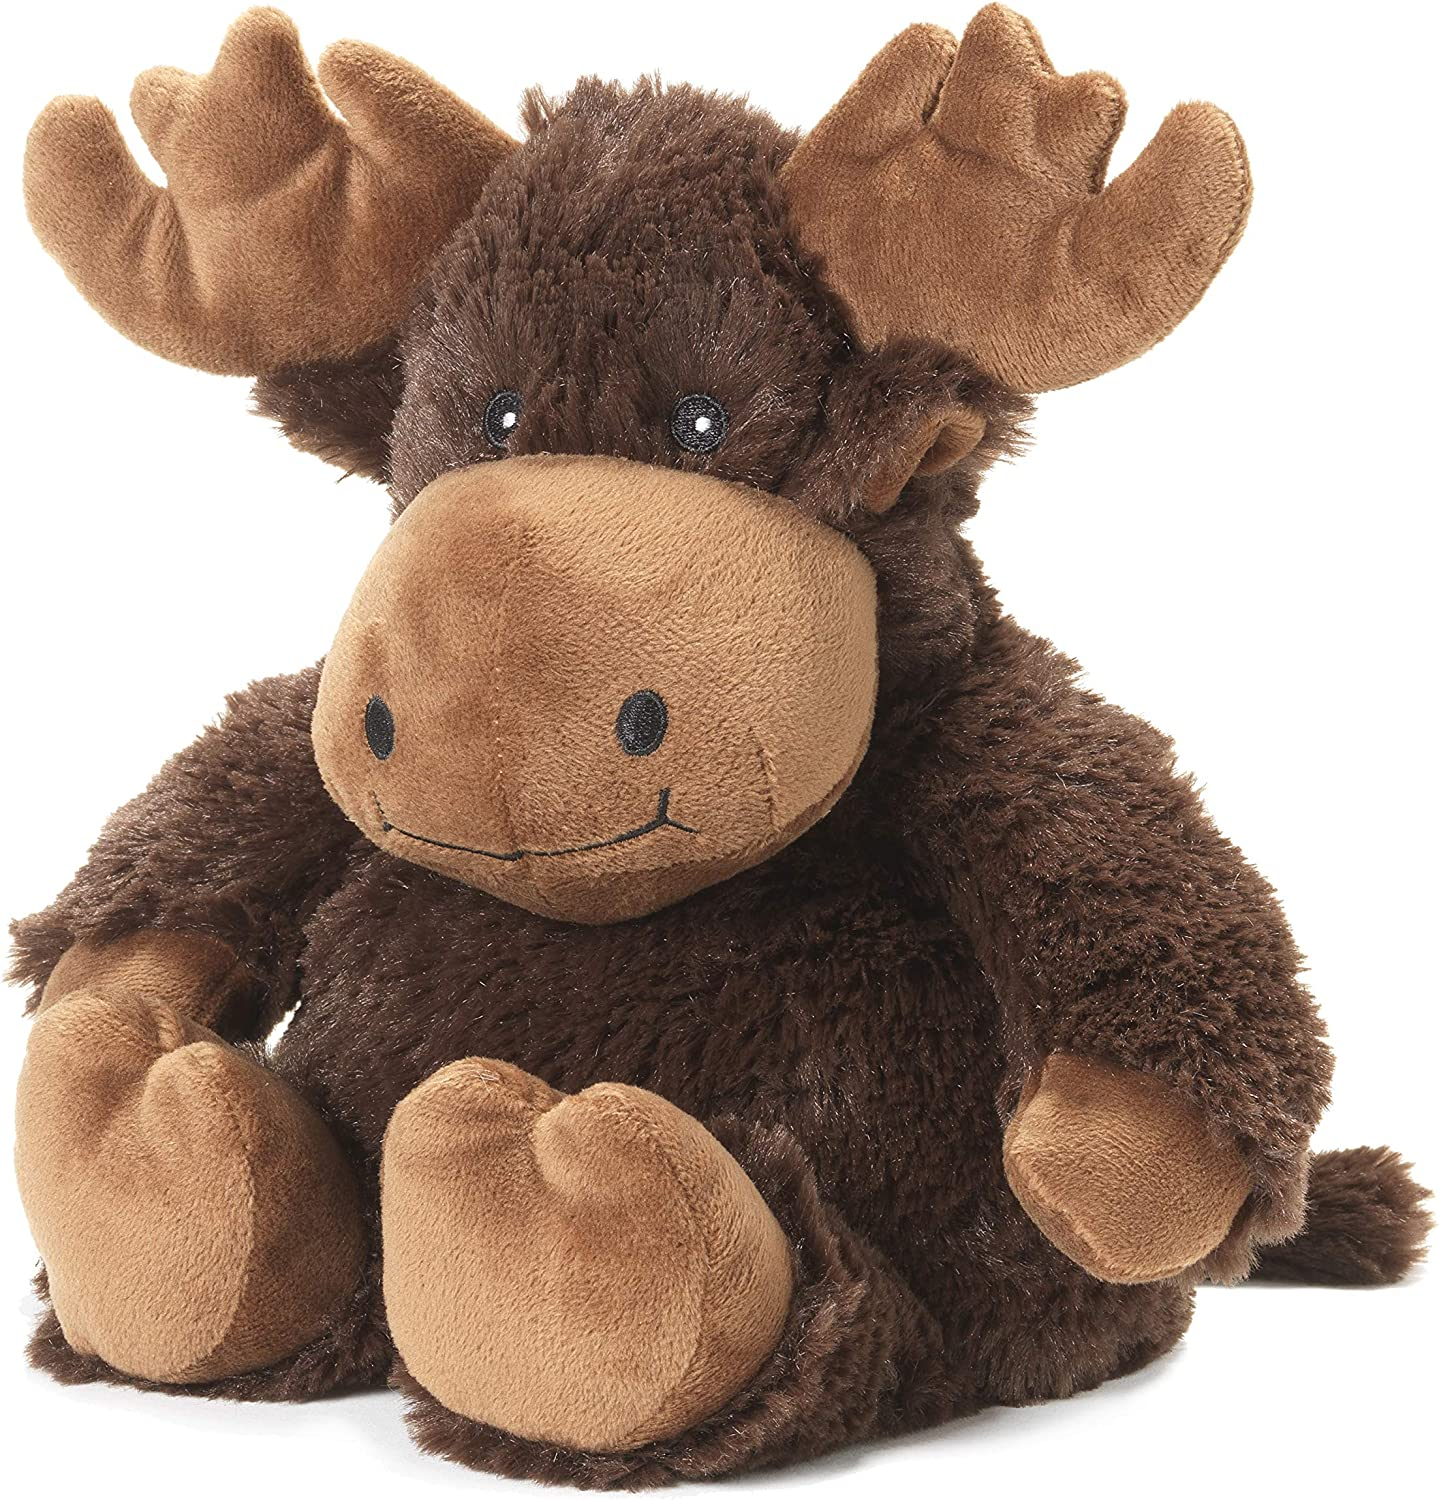 Intelex Warmies Microwavable French Lavender Scented Plush, Moose Warmies